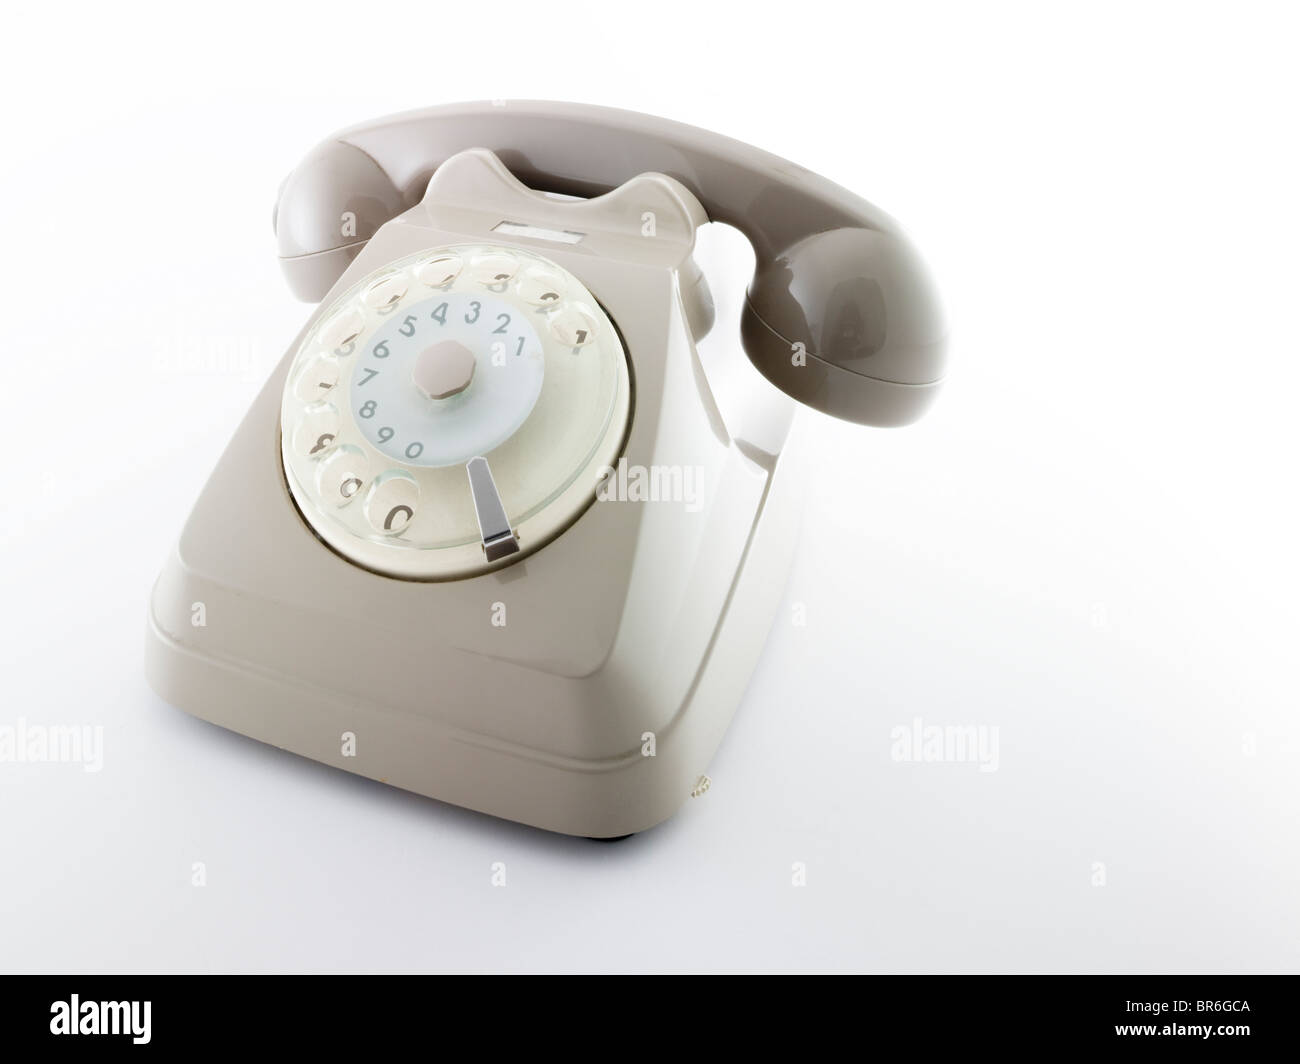 old rotating dial telephon over a white background - Stock Image